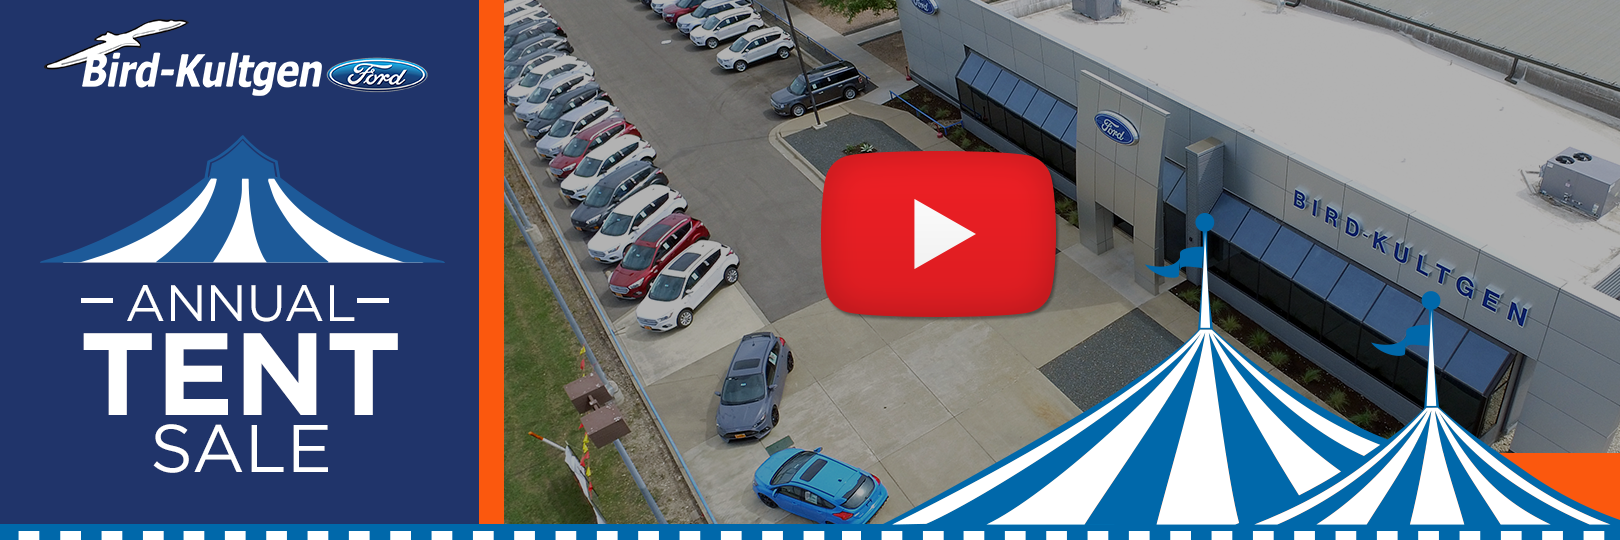 Ford Dealer in Waco, TX | Used Cars Waco | Bird-Kultgen Ford